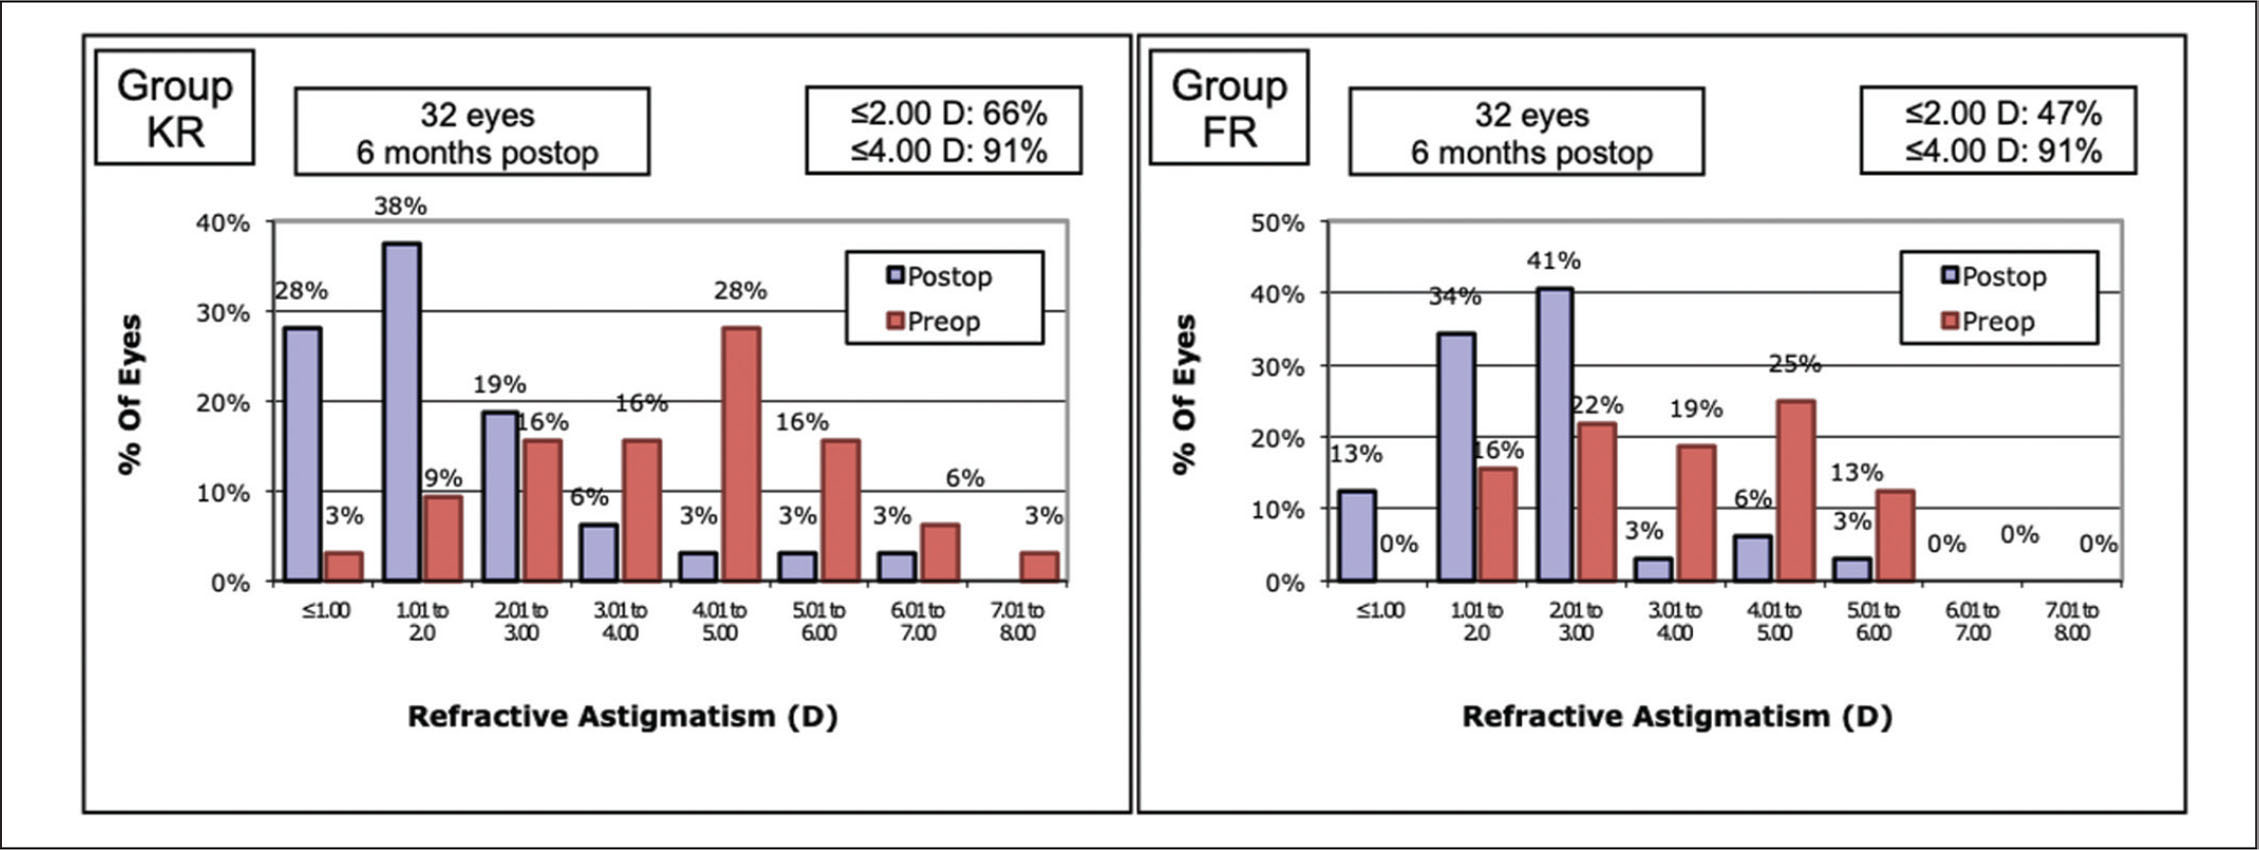 Manifest refractive astigmatism (MRA) distribution before and after treatment in the Keraring (Mediphacos, Belo Horizonte, Brazil) group (left) and in the Ferrara (AJL Ophthalmics, Vitoria, Spain) group (right). D = diopters